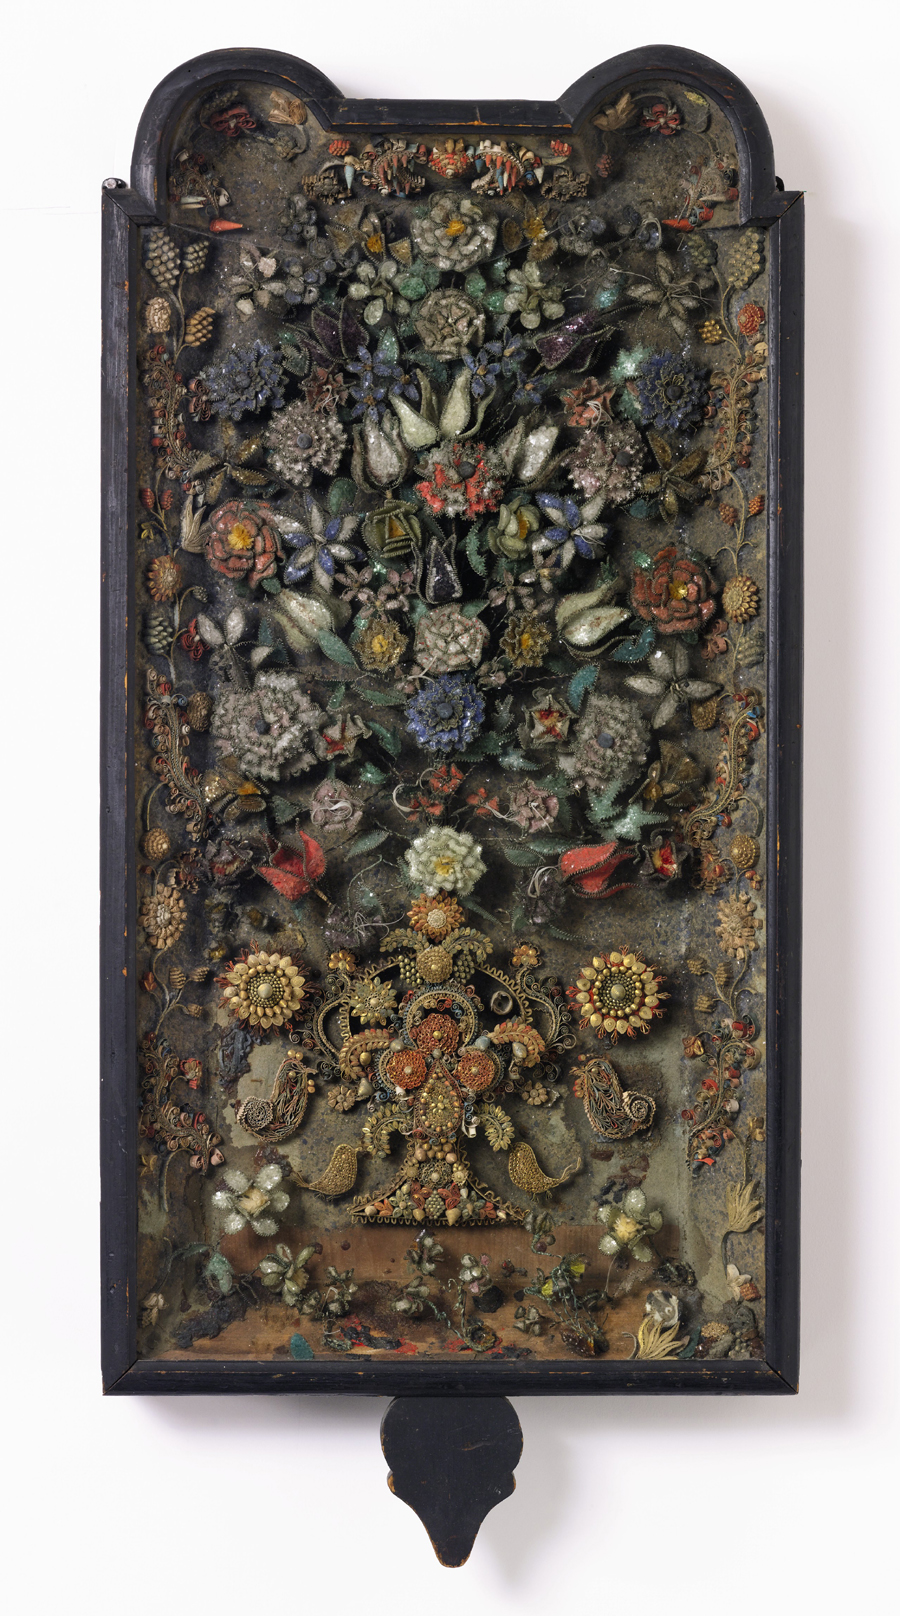 A great rarity, this Boston filigree hanging wall sconce of circa 1730 came up at Northeast Auctions in 2000, where it made $ 200,500. Post Great Recession, Sotheby's resold it for $ 125,000 ($ 150/200,000). Found in Massachusetts, it was owned by Henry F. du Pont's sister, Louise Crowninshield, and is one of approximately 25 surviving examples.